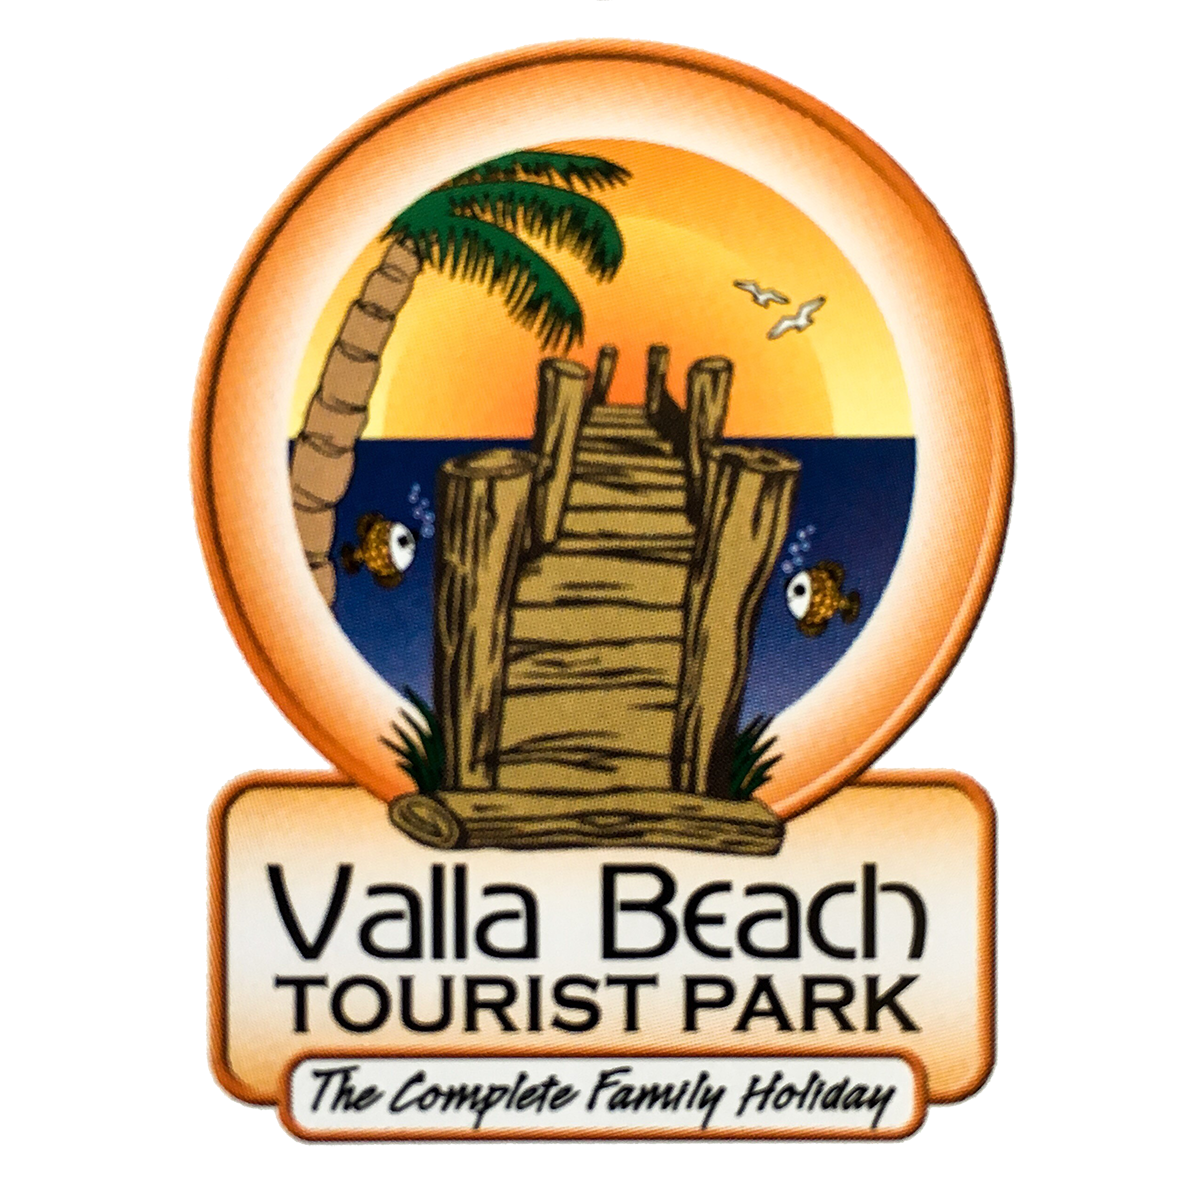 Valla Beach Tourist Park